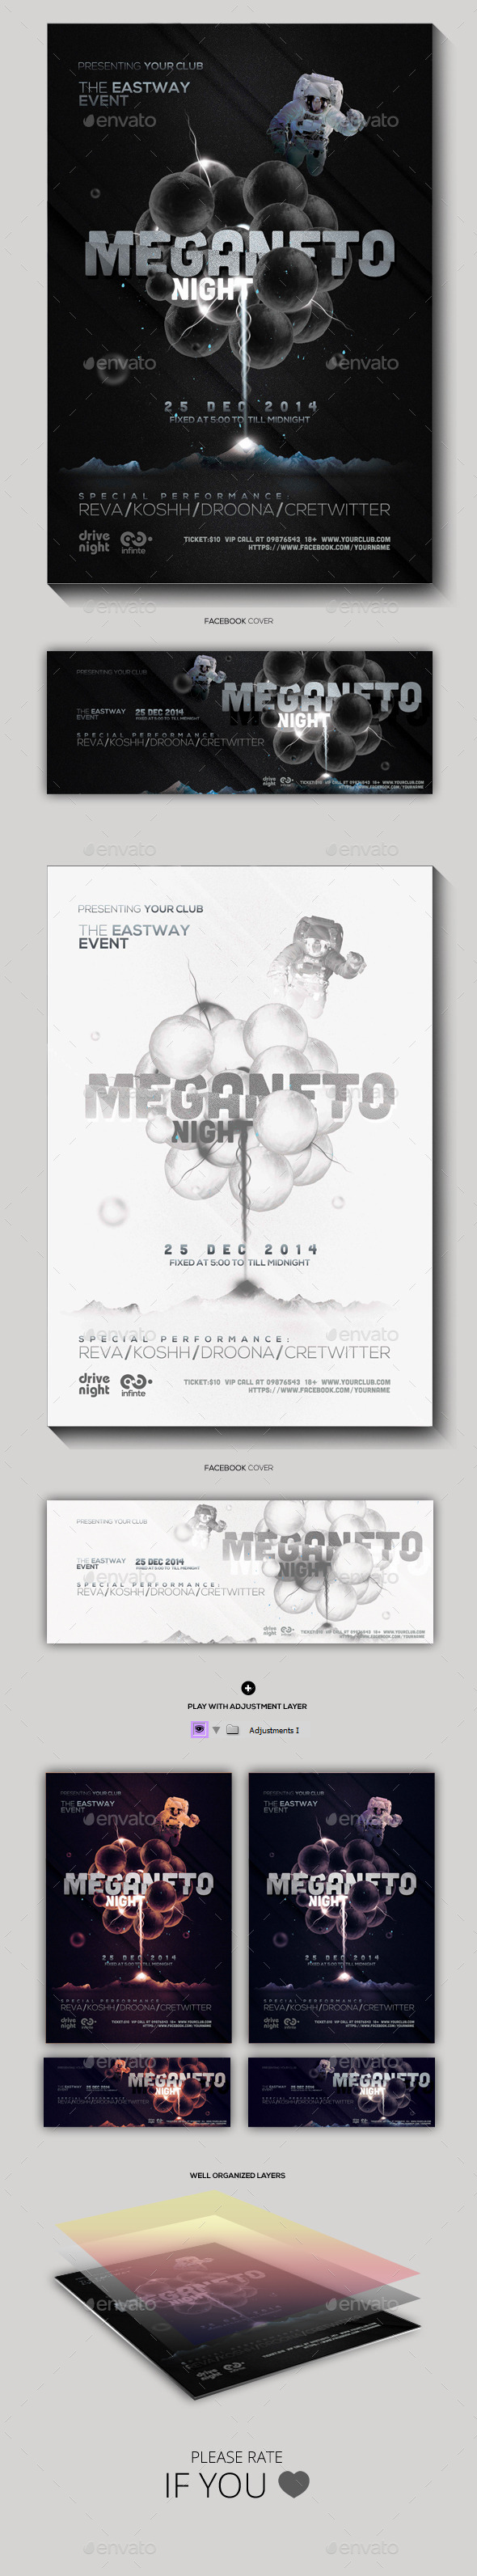 Magneto Night Party Flyer - Clubs & Parties Events